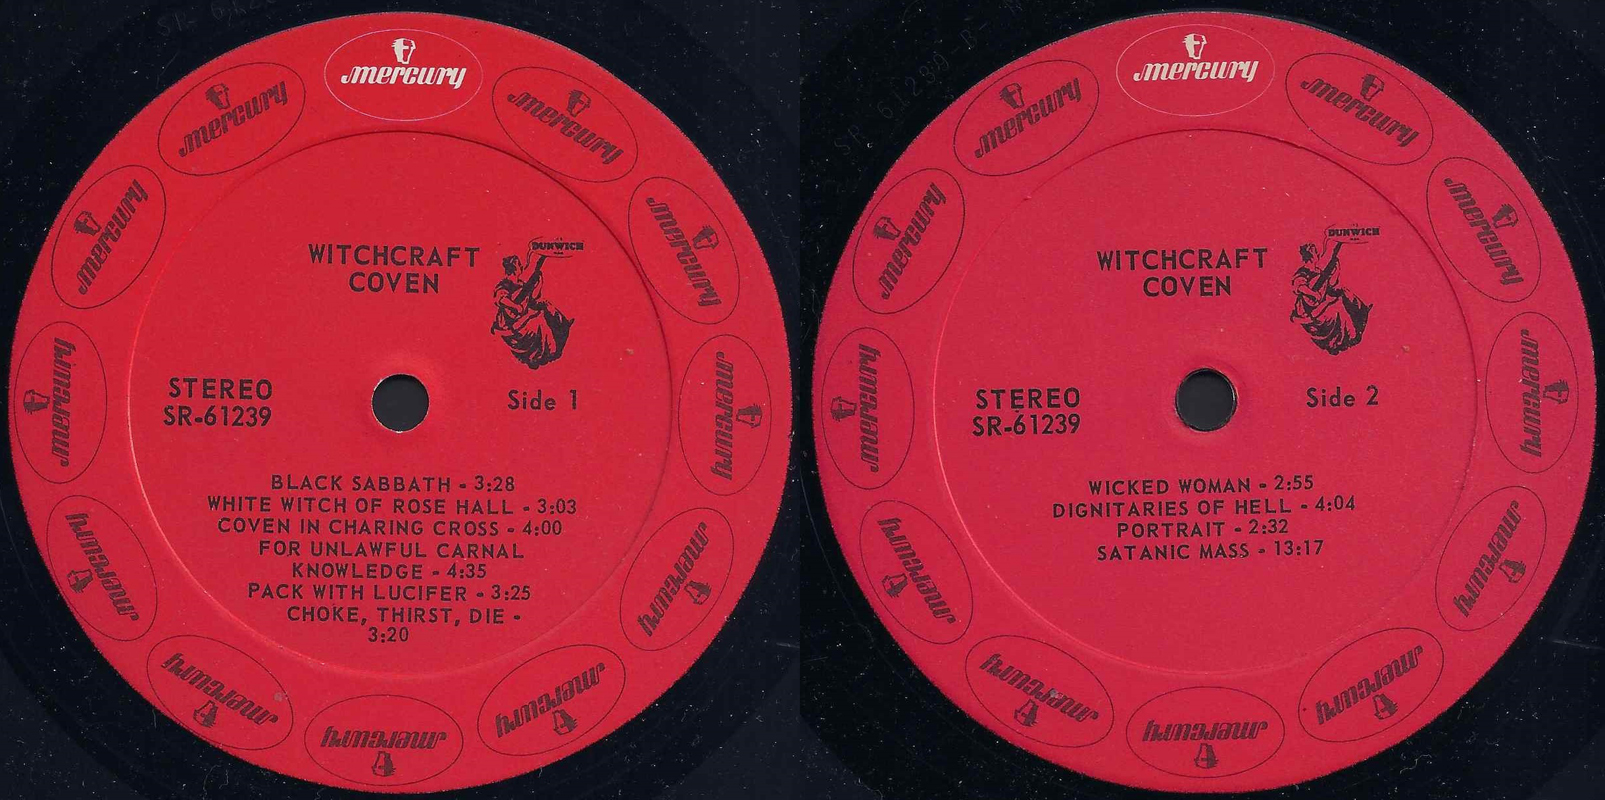 Coven - Witchcraft Destroys Minds And Reaps Souls (1969) [Vinyl Rip